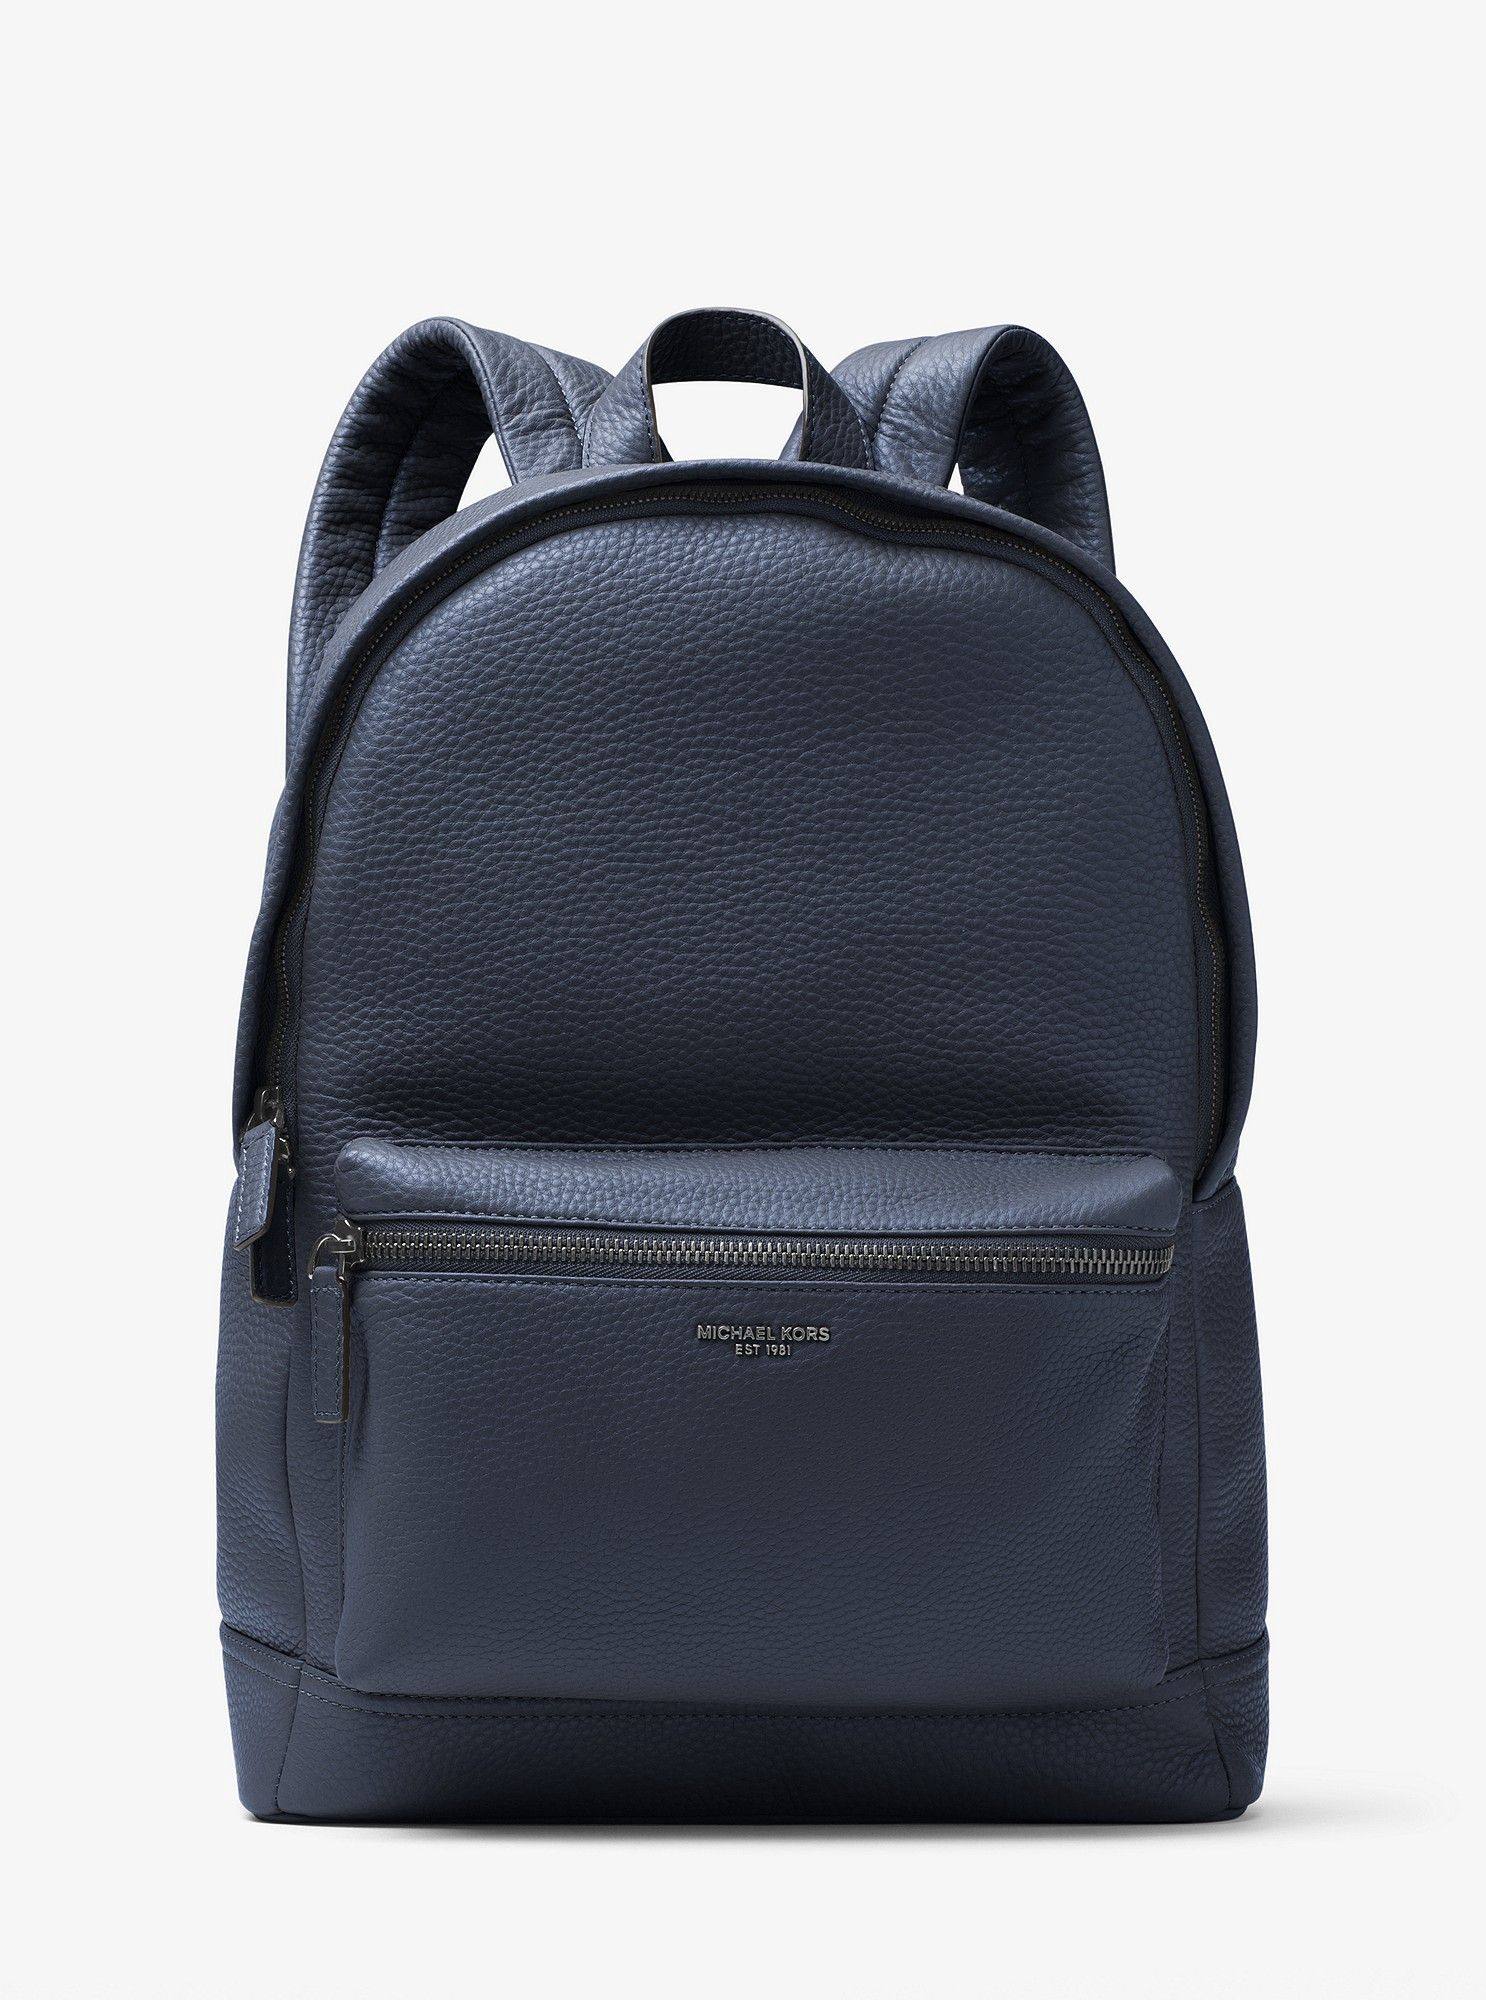 Michael Kors Bryant Leather Backpack Navy | Leather